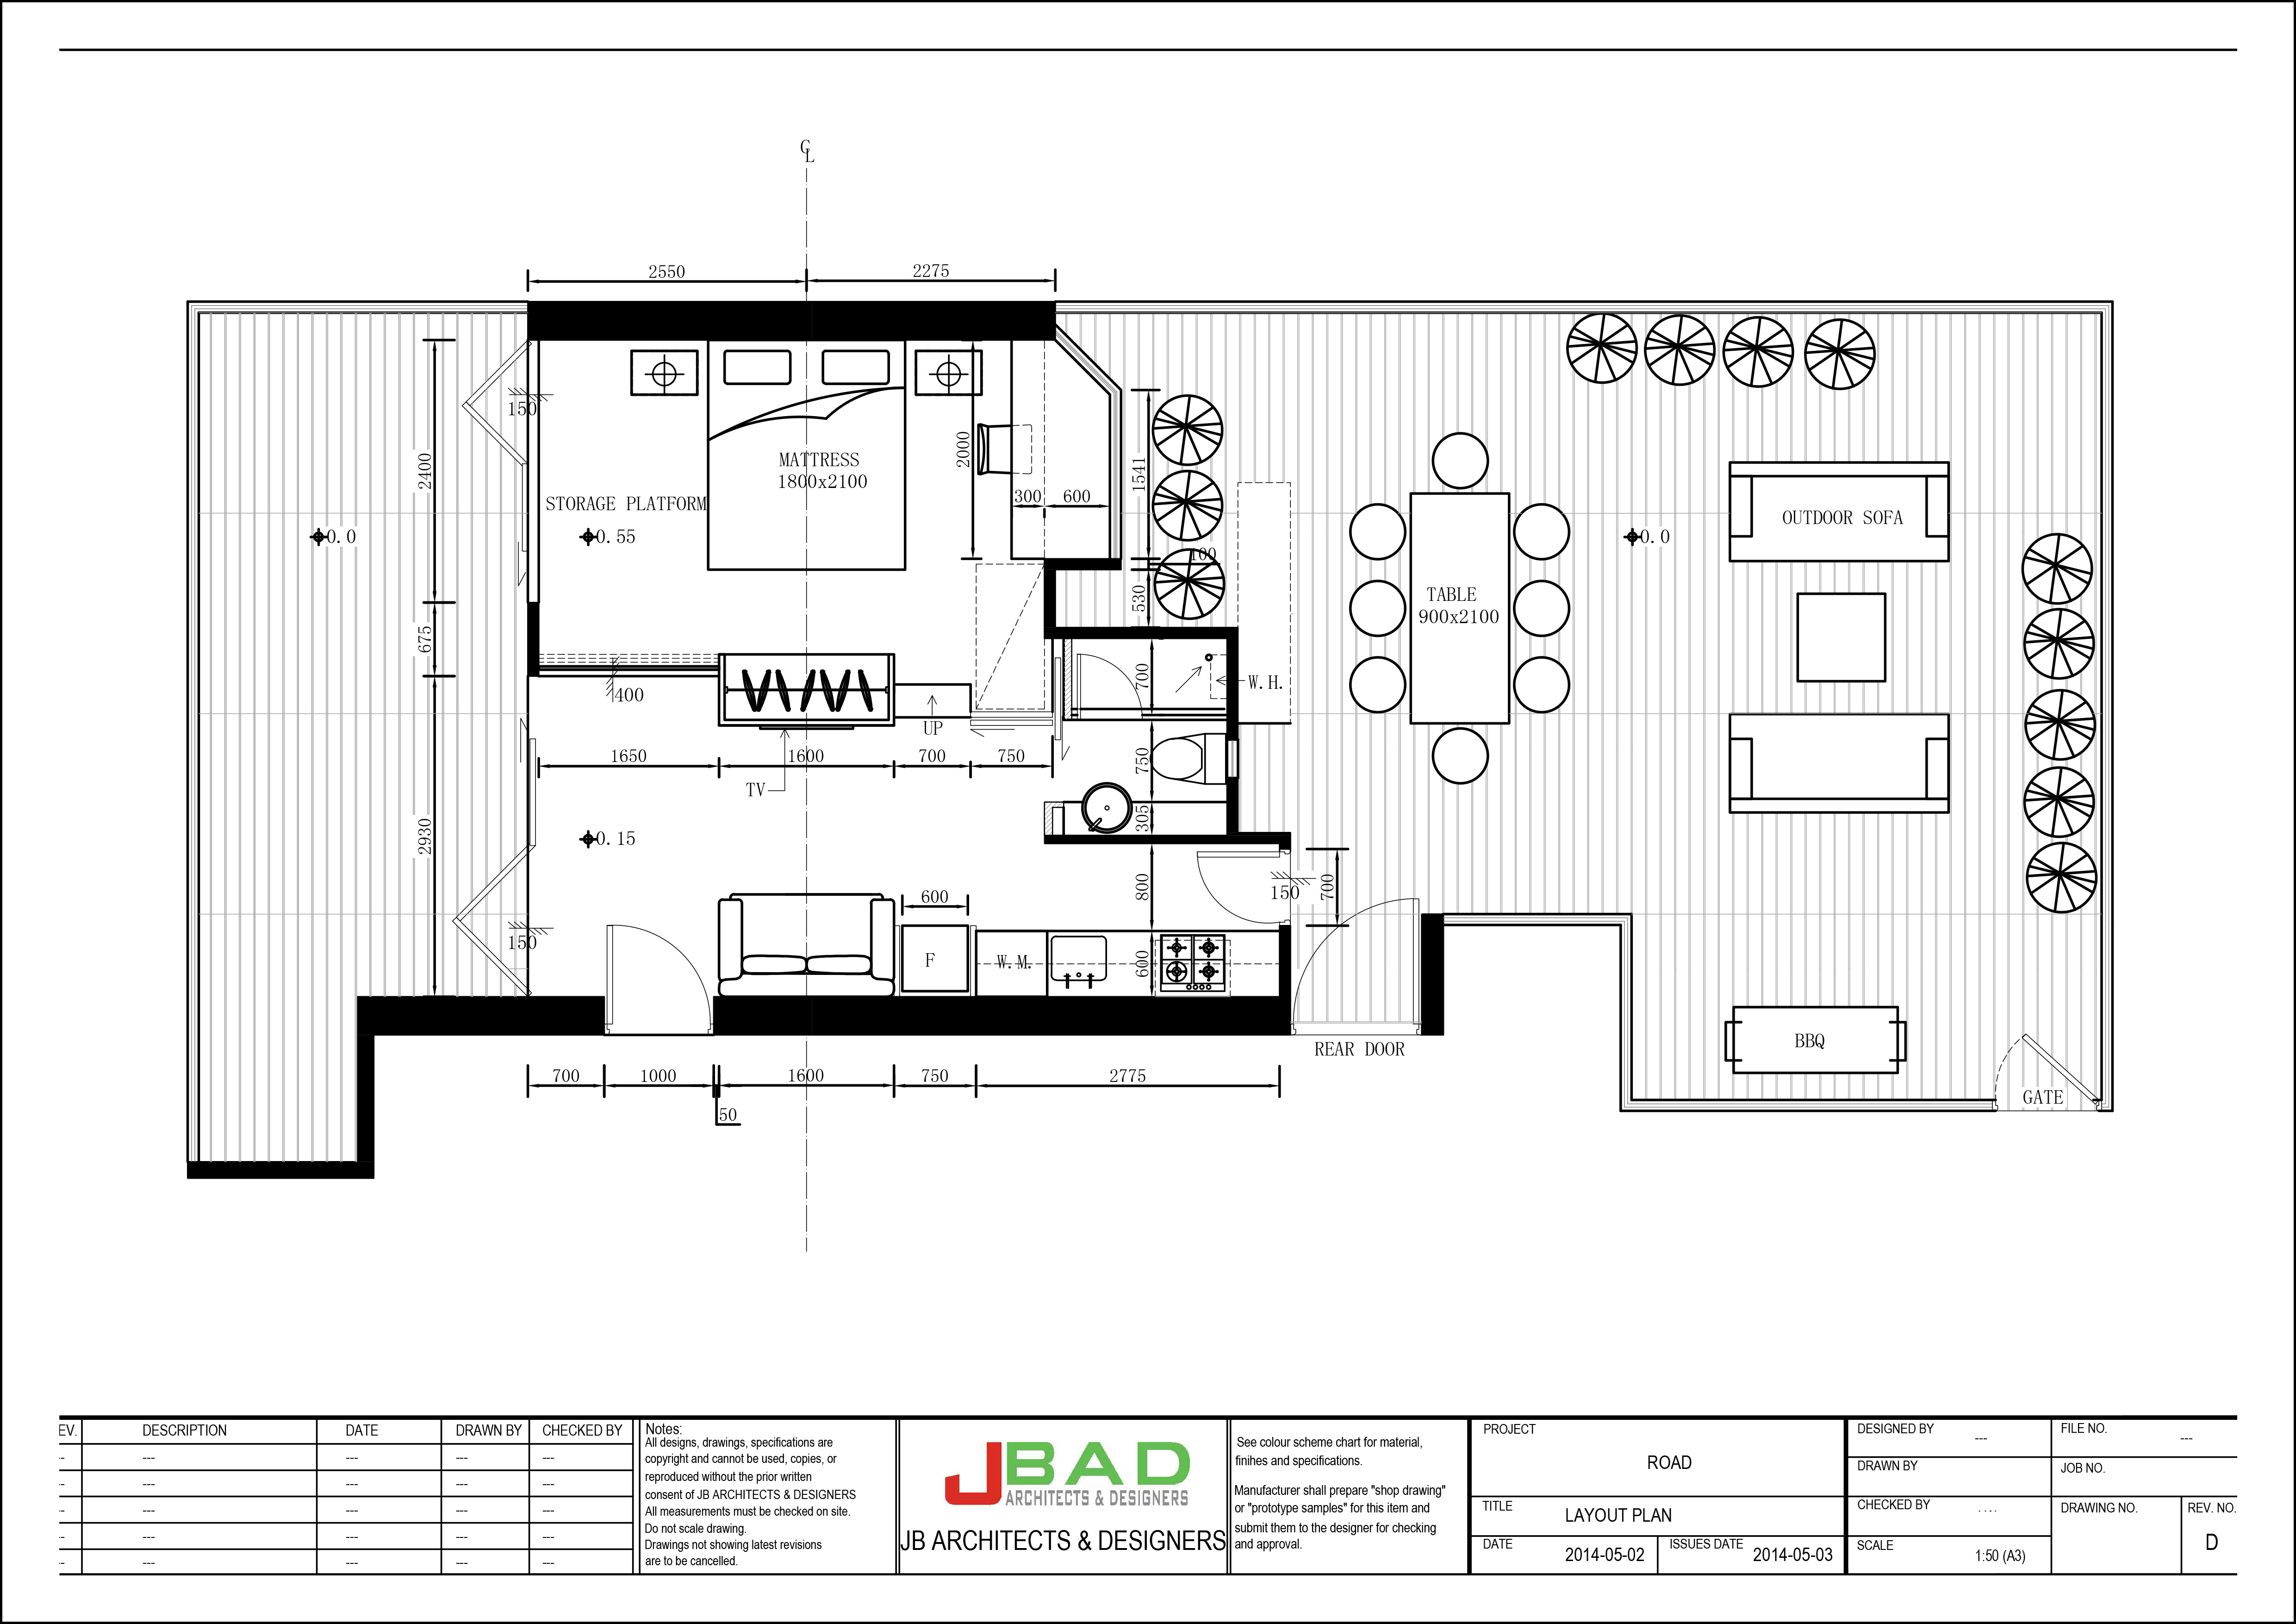 Proposed Floor Plan For Interior Design U2013 Mid Levels, Hong Kong.